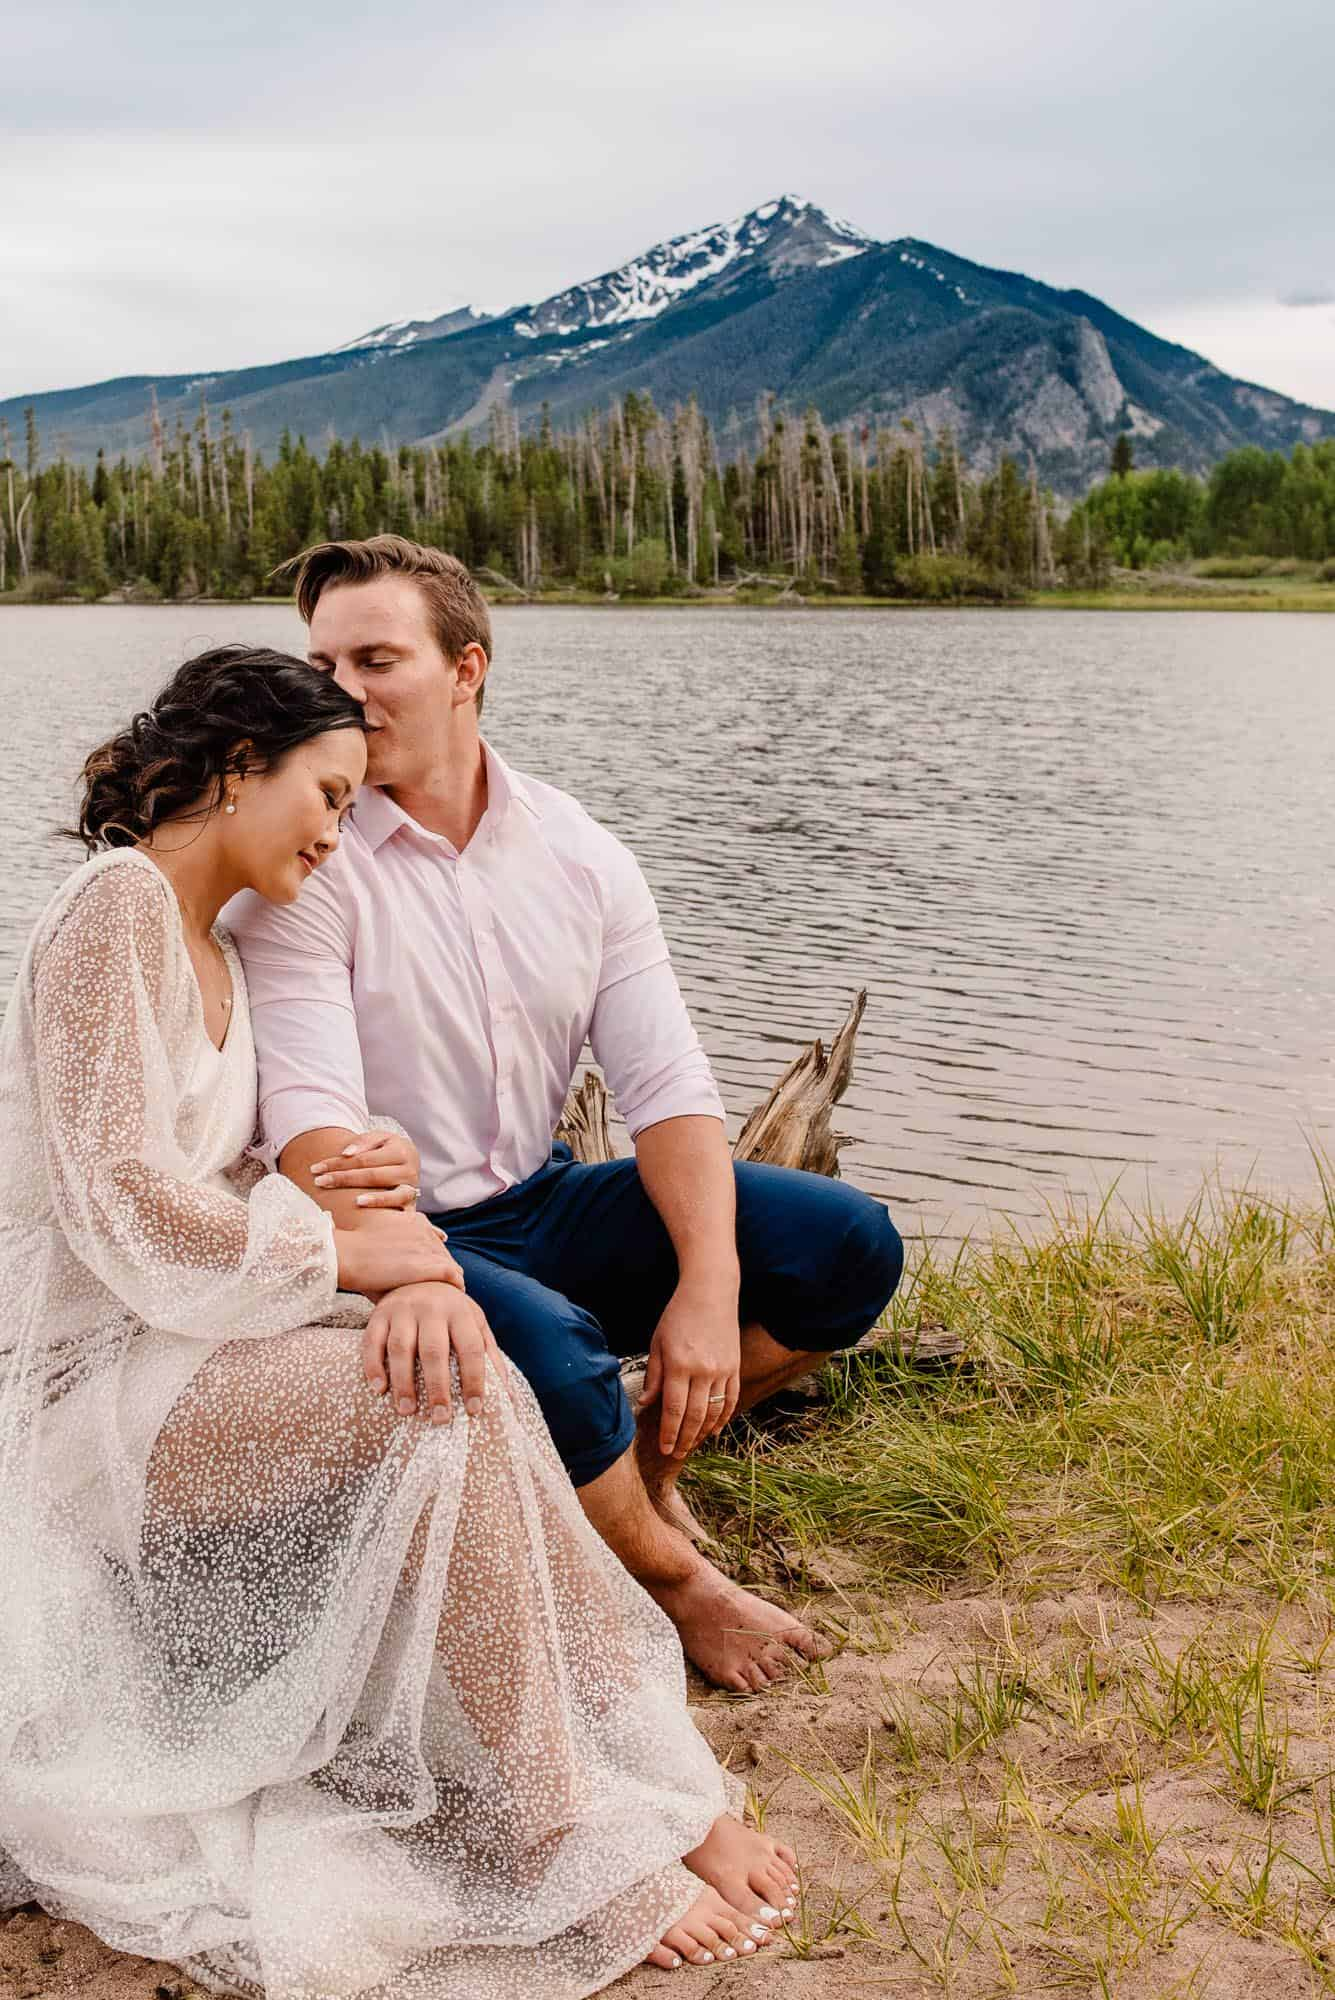 groom kissing brides forehead as they sit cozily on a wooden log near an alpine lake so happy they eloped during the pandemic